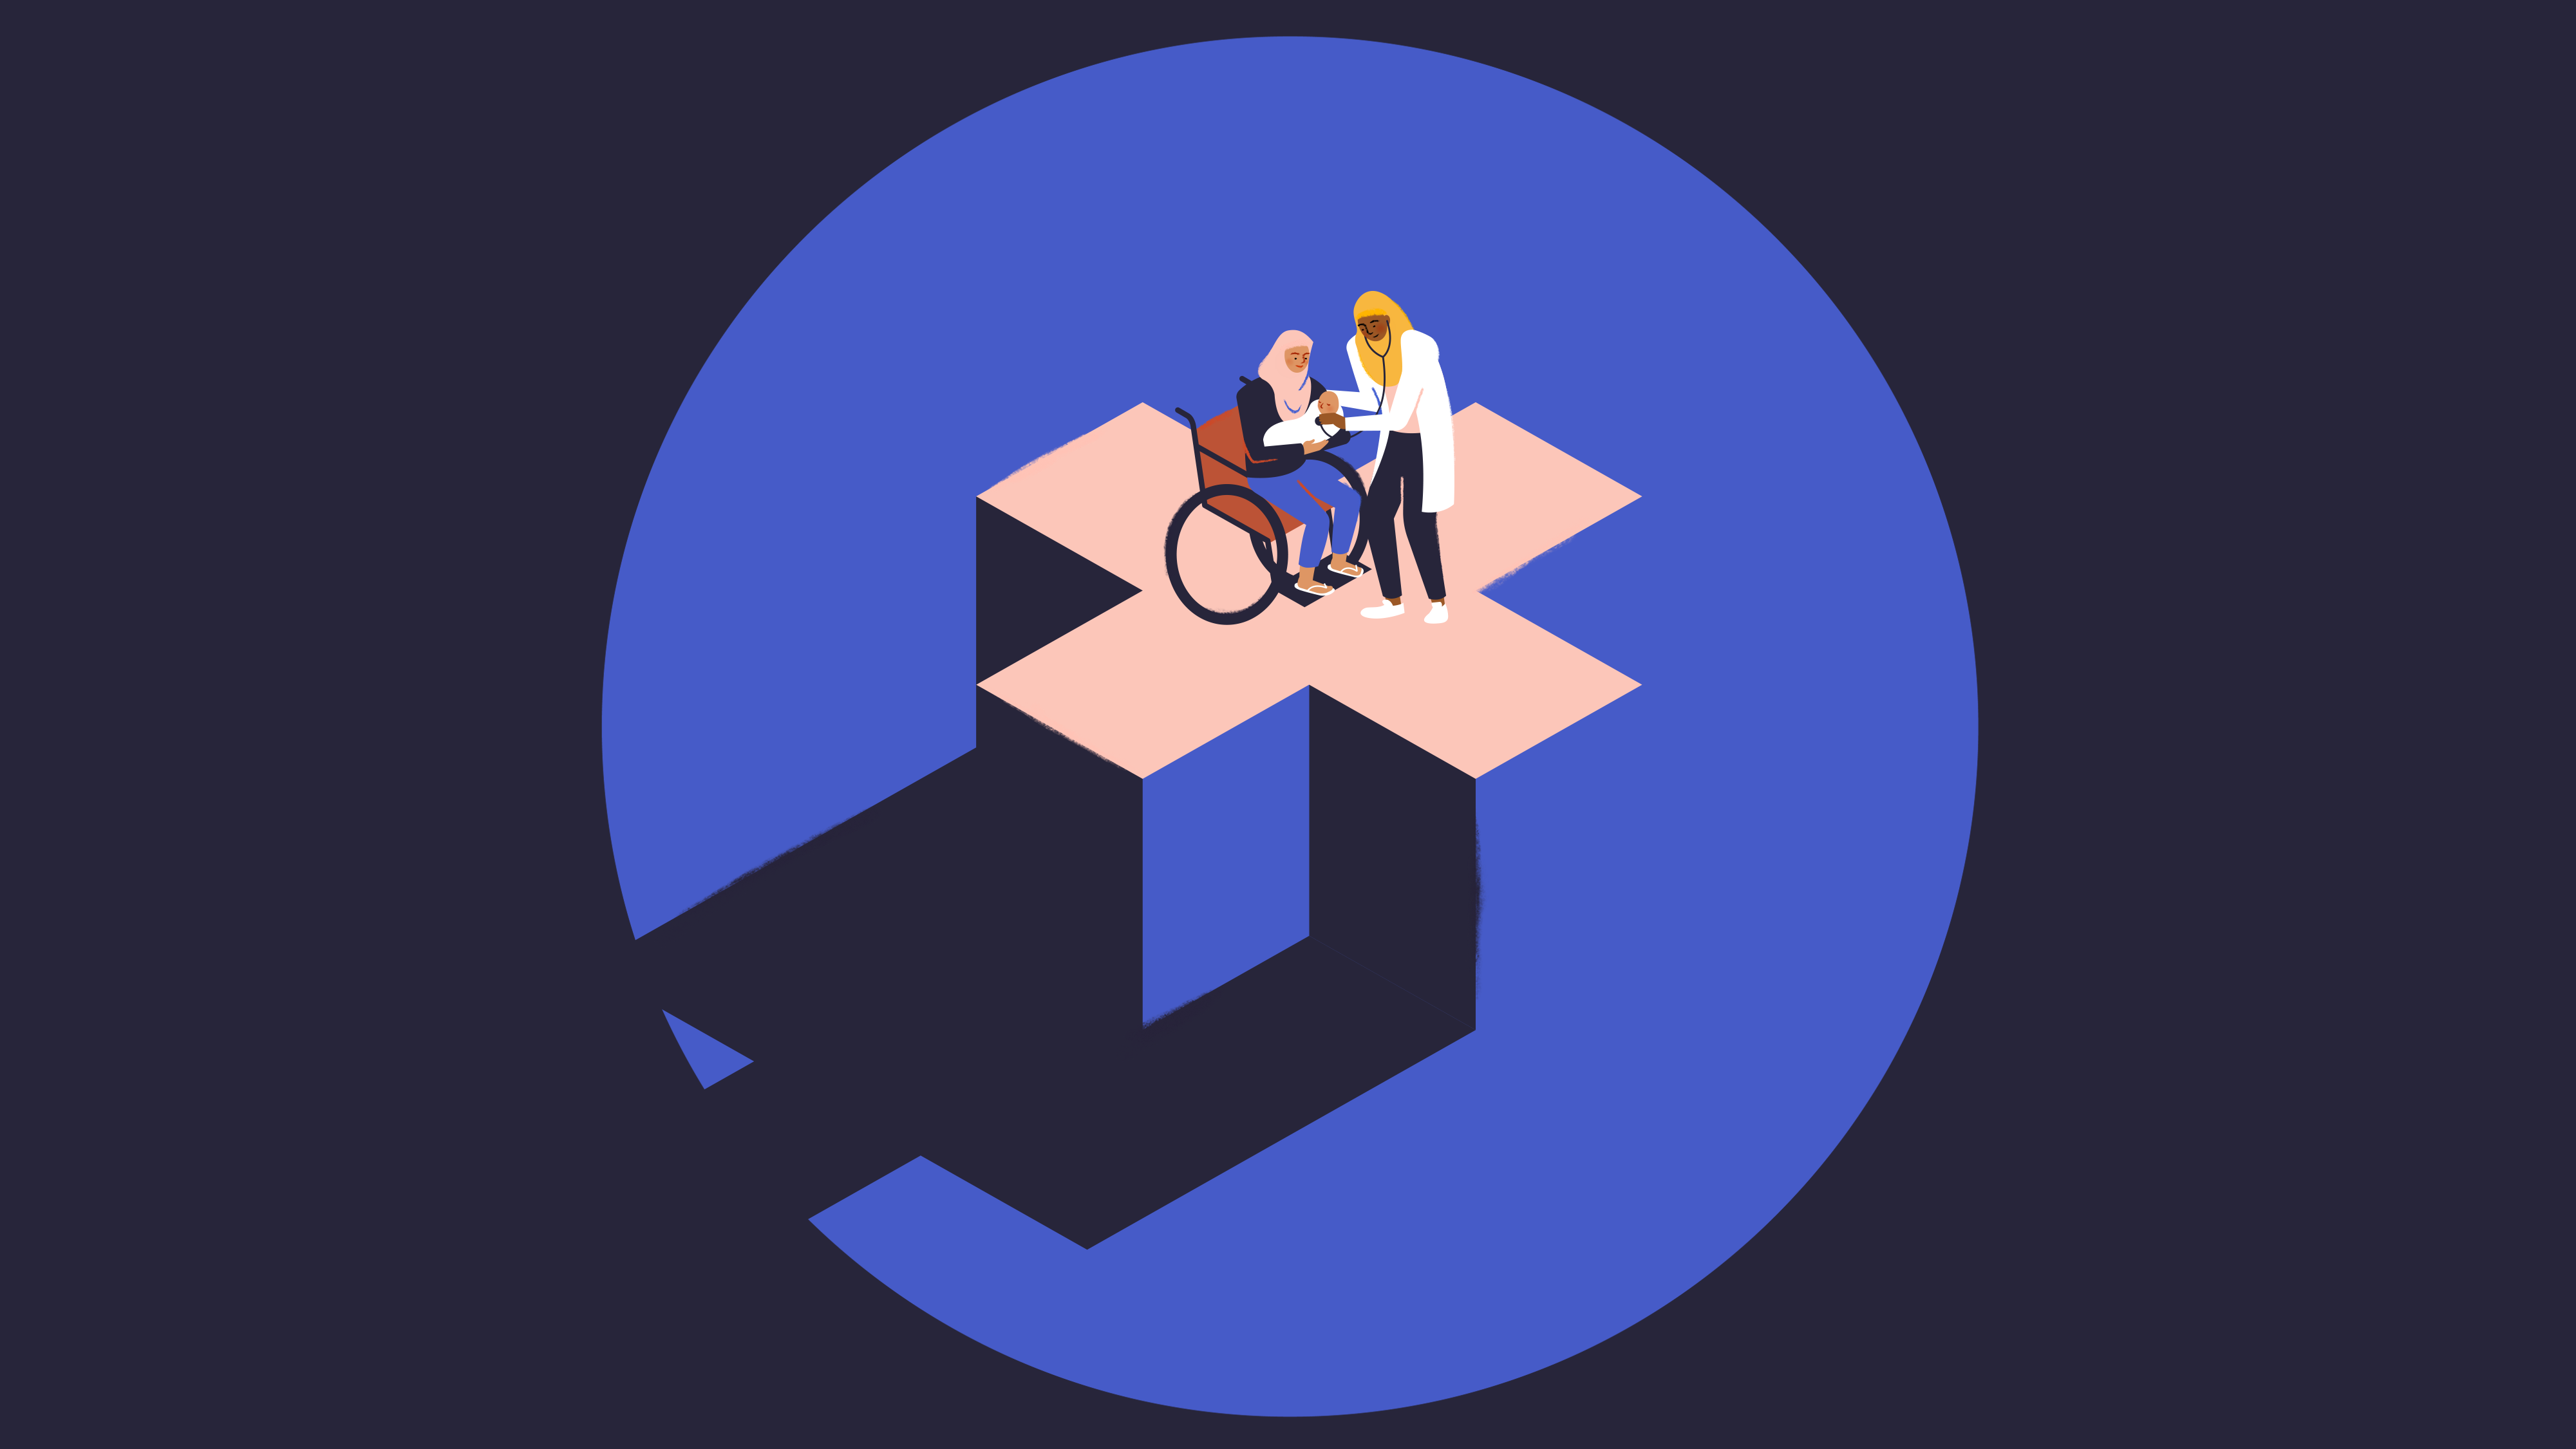 A healthcare provider supports a woman in a wheelchair on a raised platform shaped like a medical cross